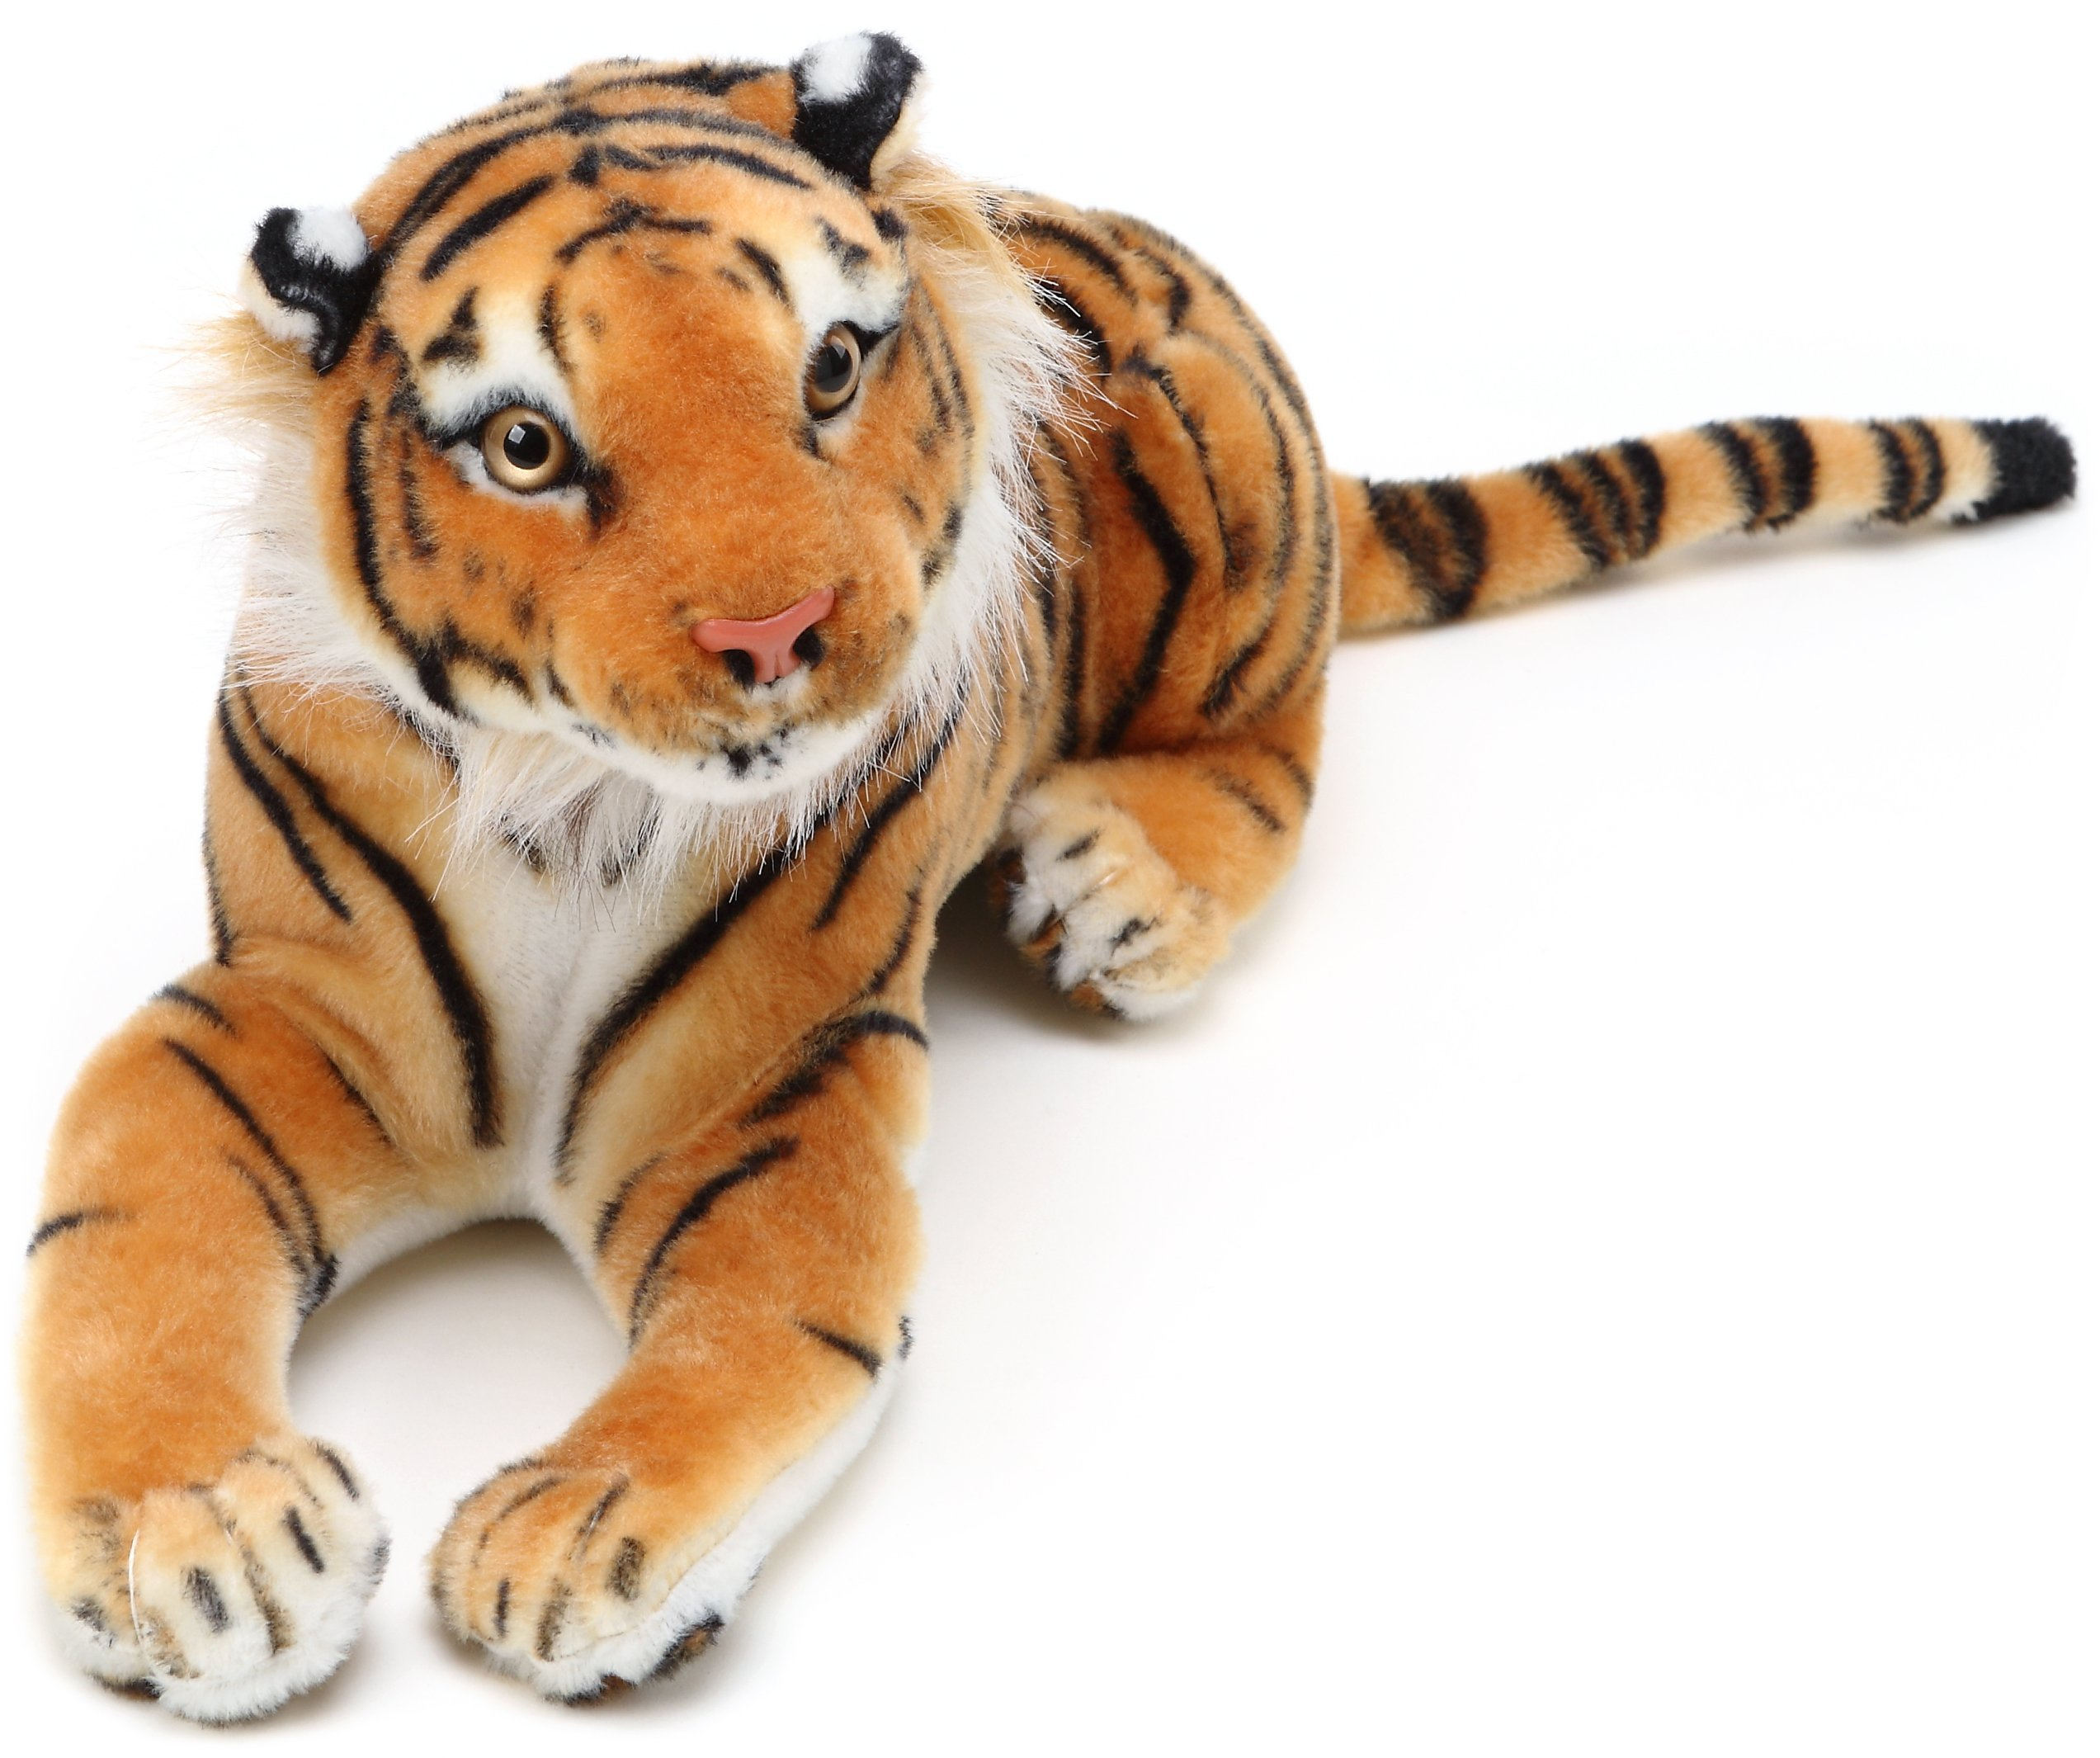 VIAHART Arrow The Tiger | 2 ft Long (Paw to End of Tail) Stuffed Animal Plush Cat | by Tiger Tale Toys by VIAHART